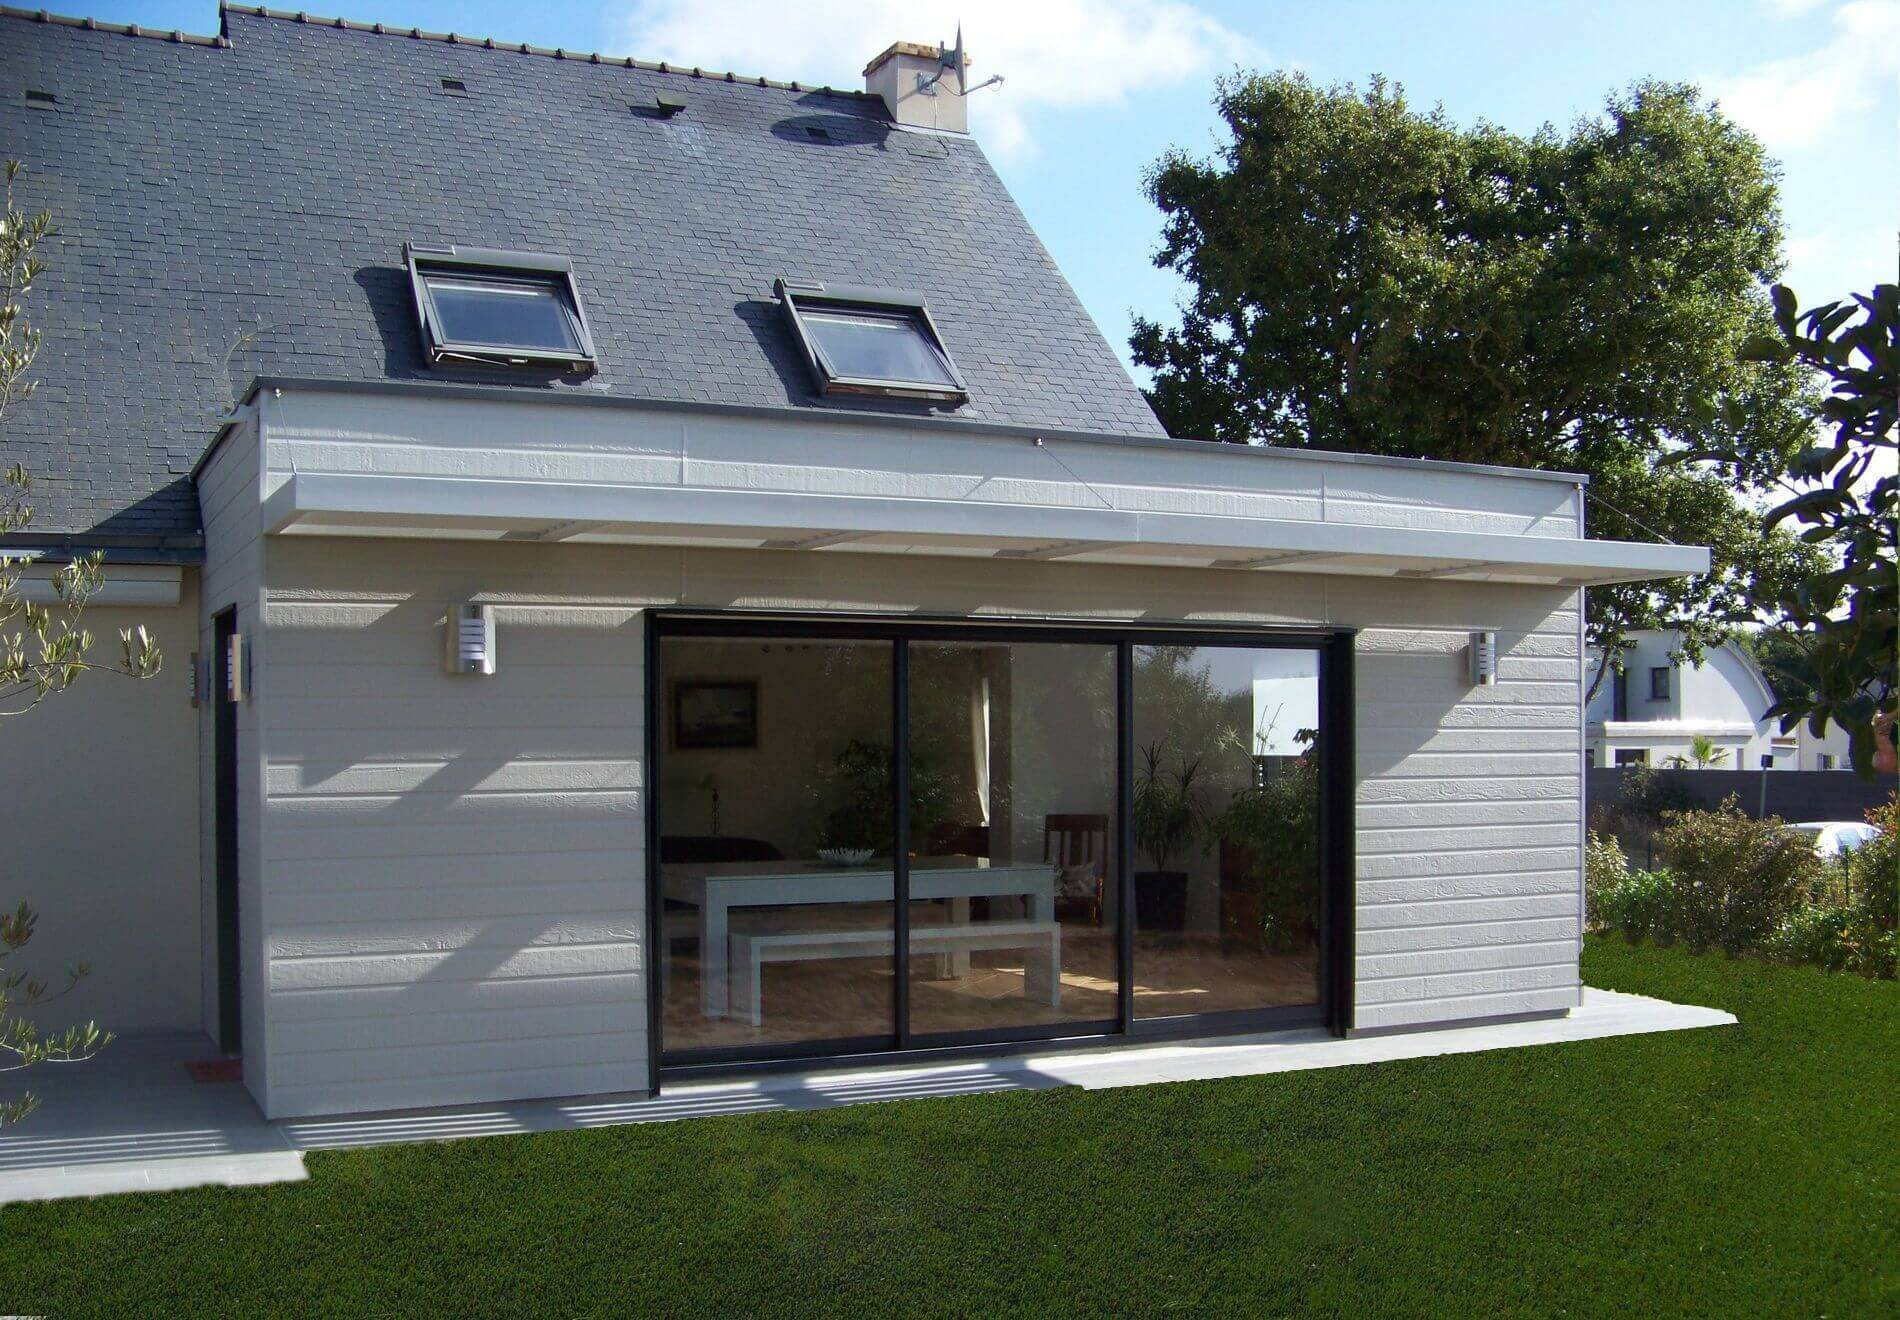 Extension ossature bois gu rande r alisation wood al Extension en bois maison